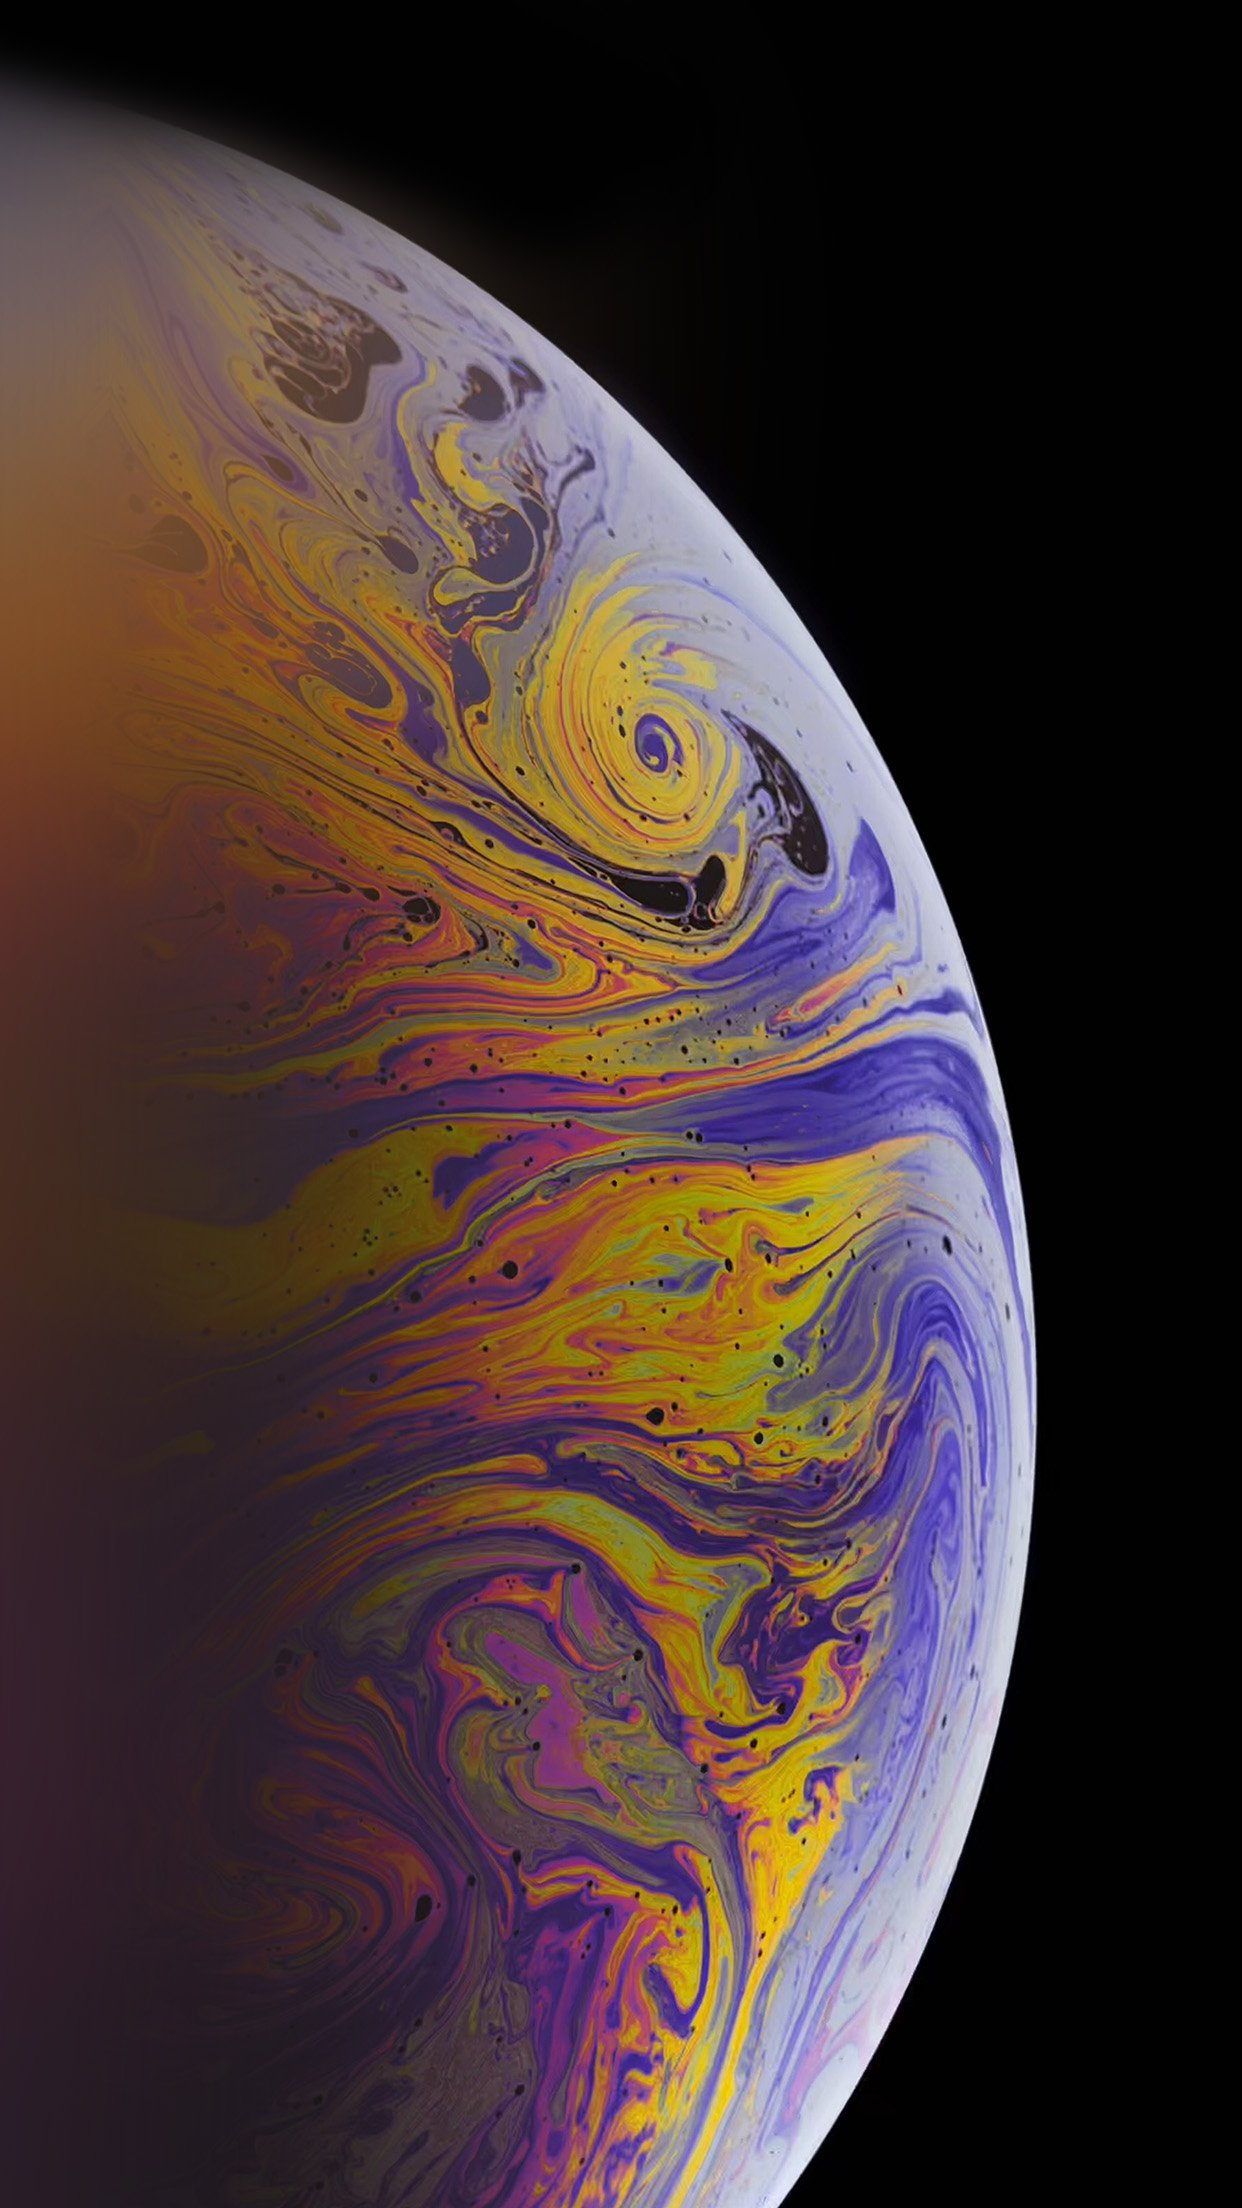 Live Iphone Xs Max Hd Wallpaper Download Apple Wallpaper Iphone 1242x2208 Download Hd Wallpaper Wallpapertip